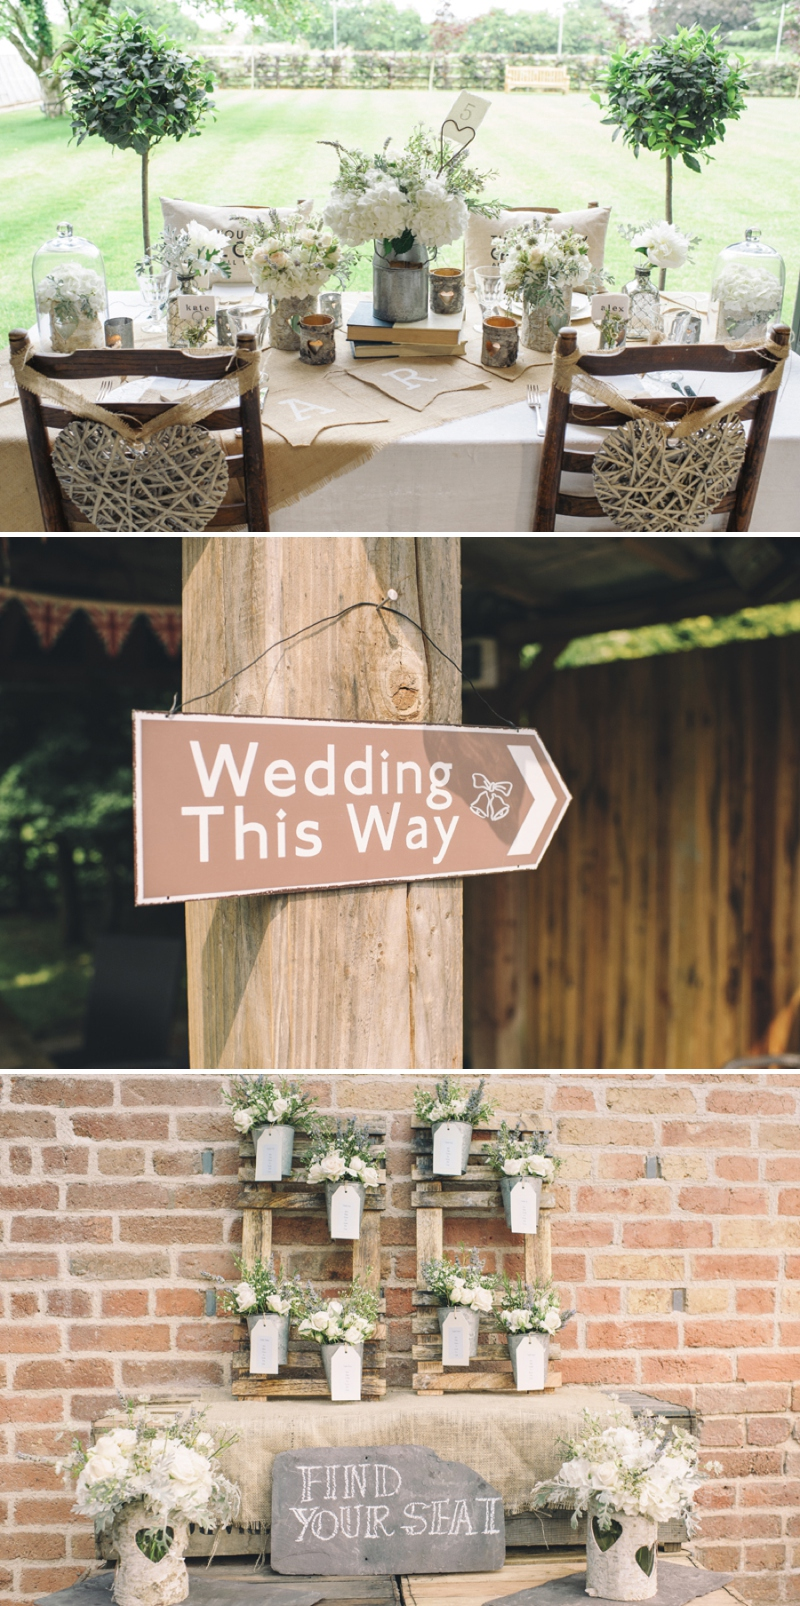 The wedding of my dreams rustic and vintage wedding decorations to buy the wedding of my dreams on line wedding decor shop vintage and rustic0540 junglespirit Image collections